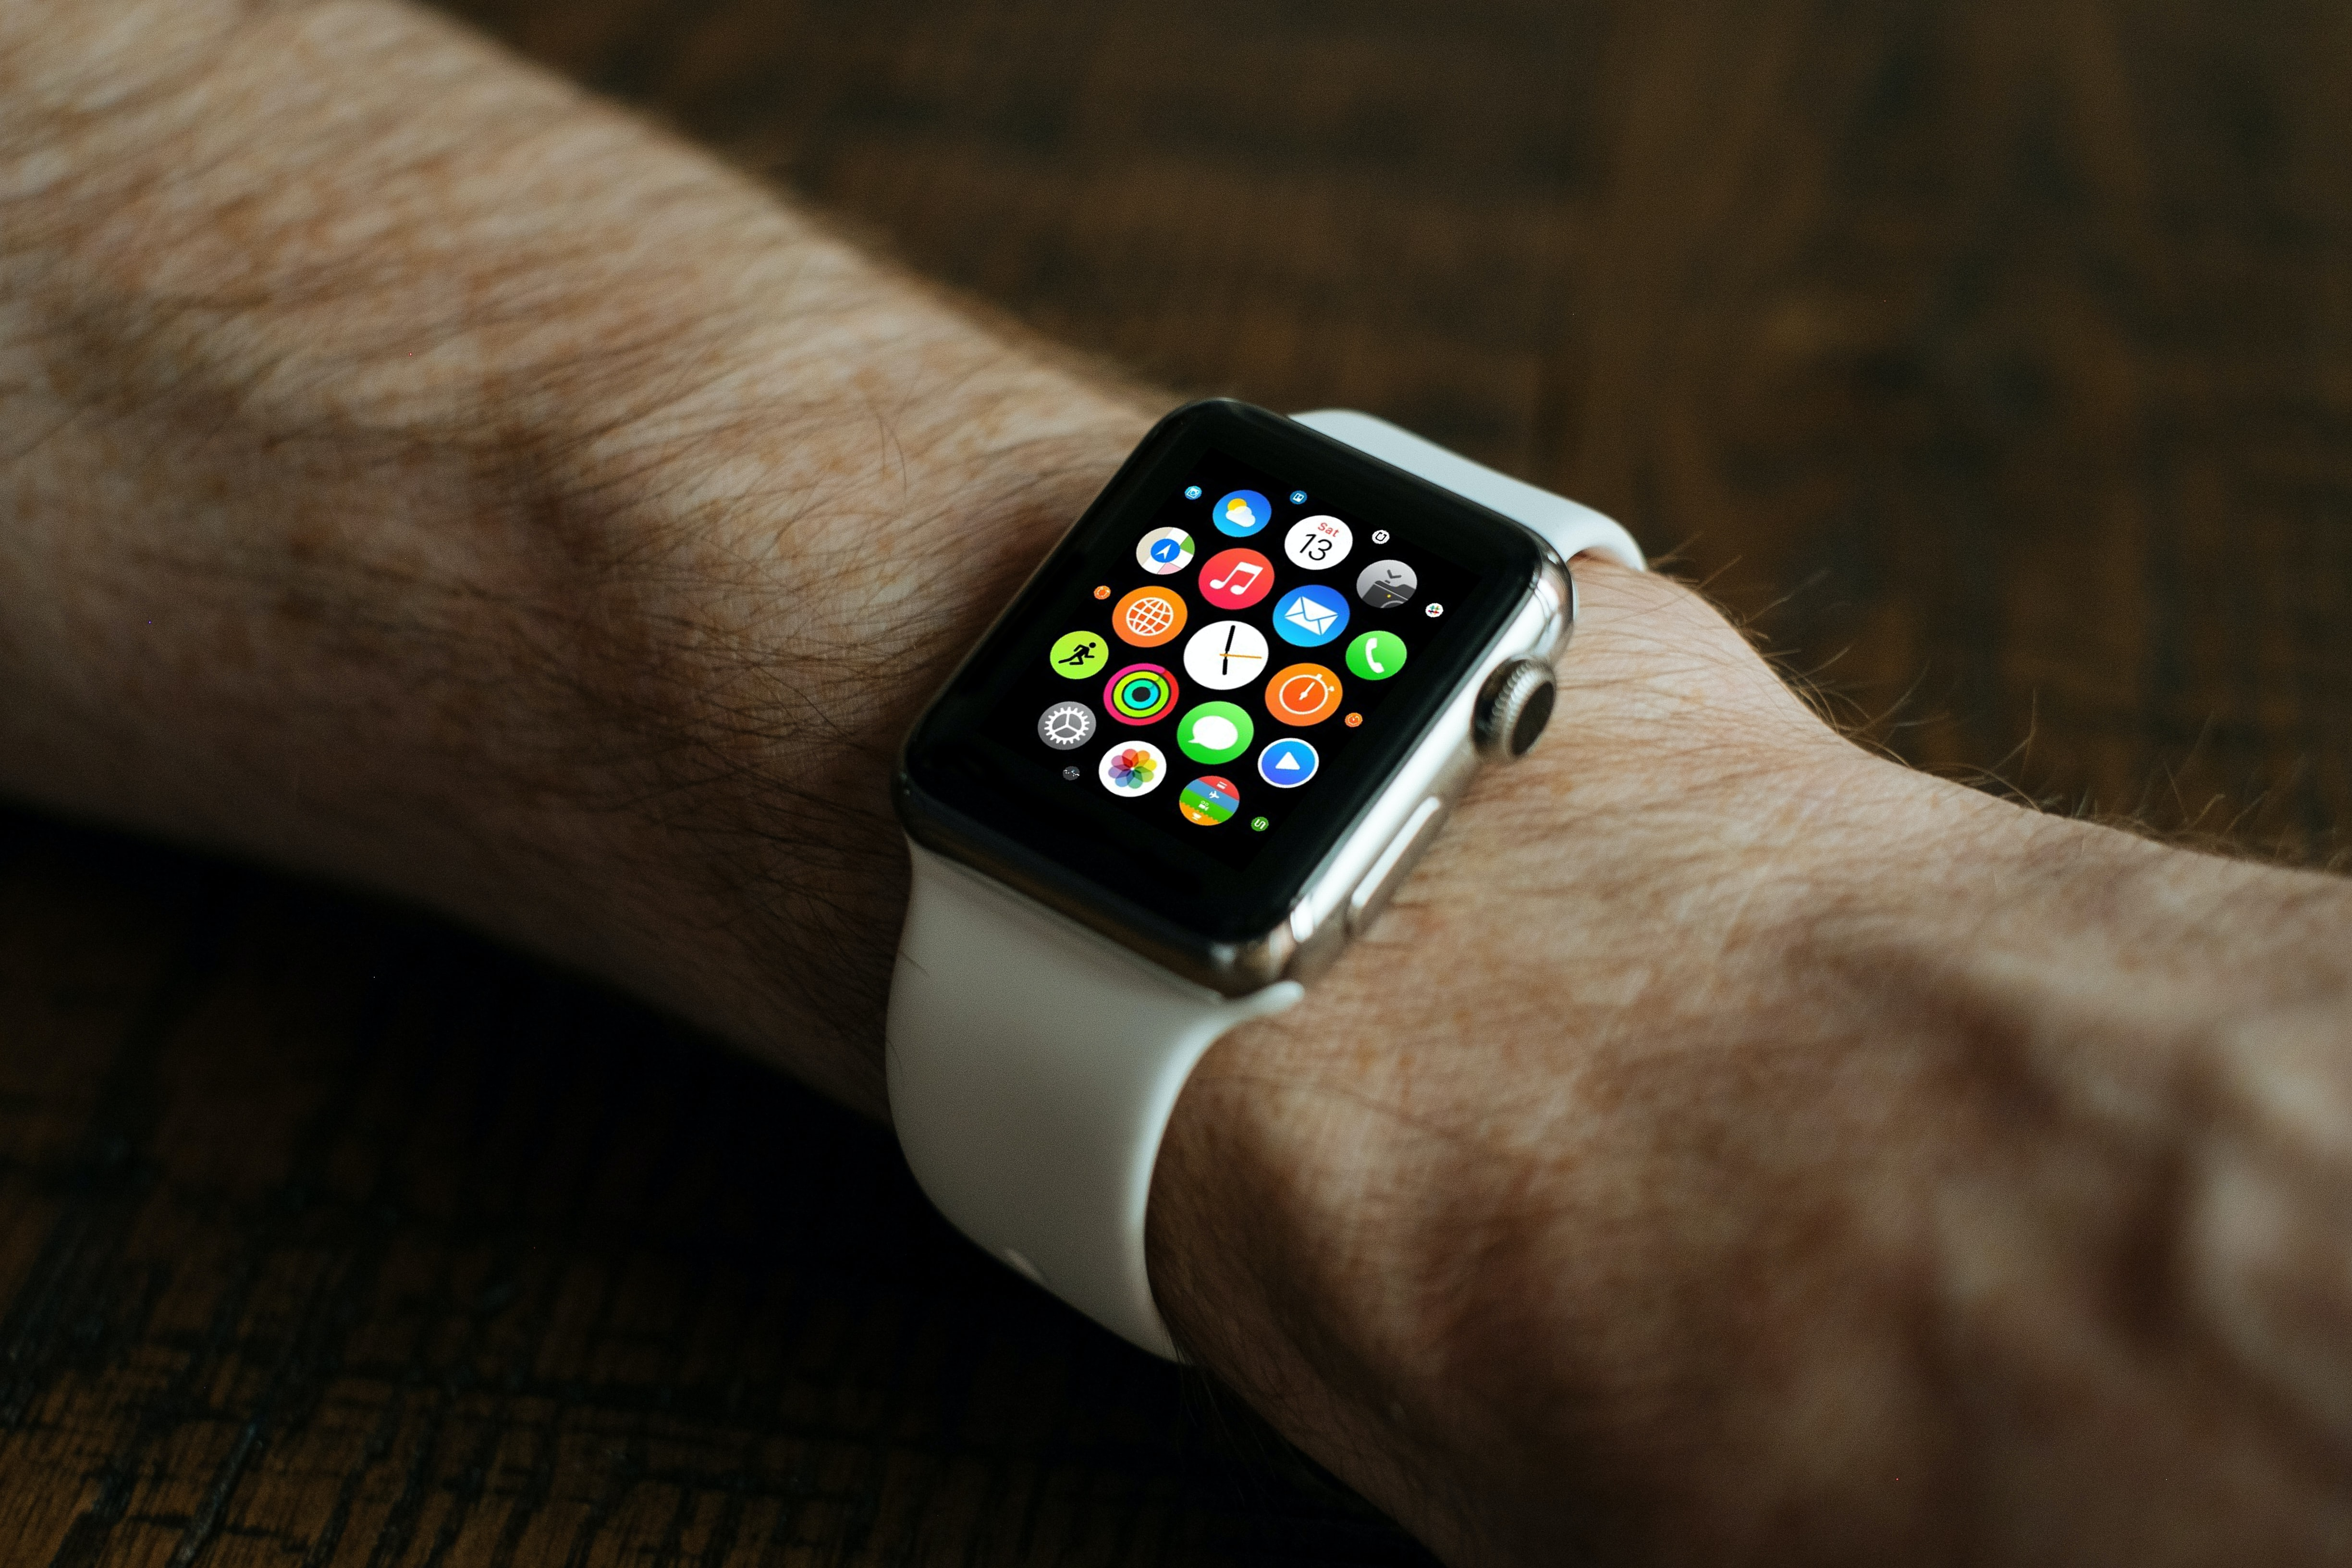 A man with a hairy arm wearing an Apple watch on its home screen with a white band